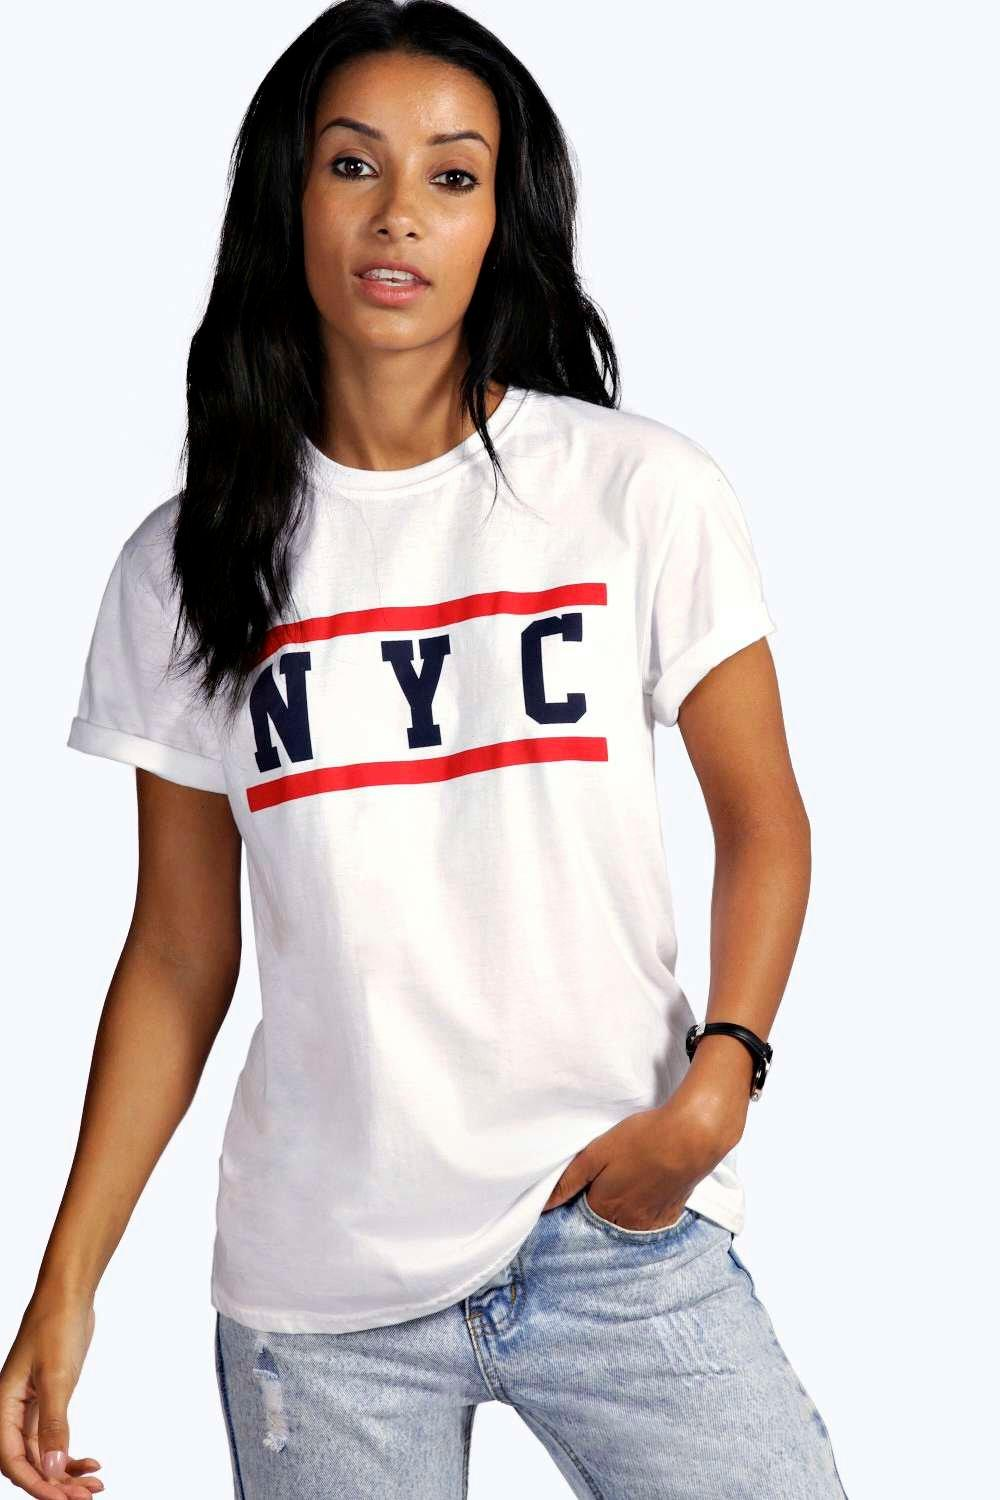 Make your top pop this season with sporty baseball style basic tees